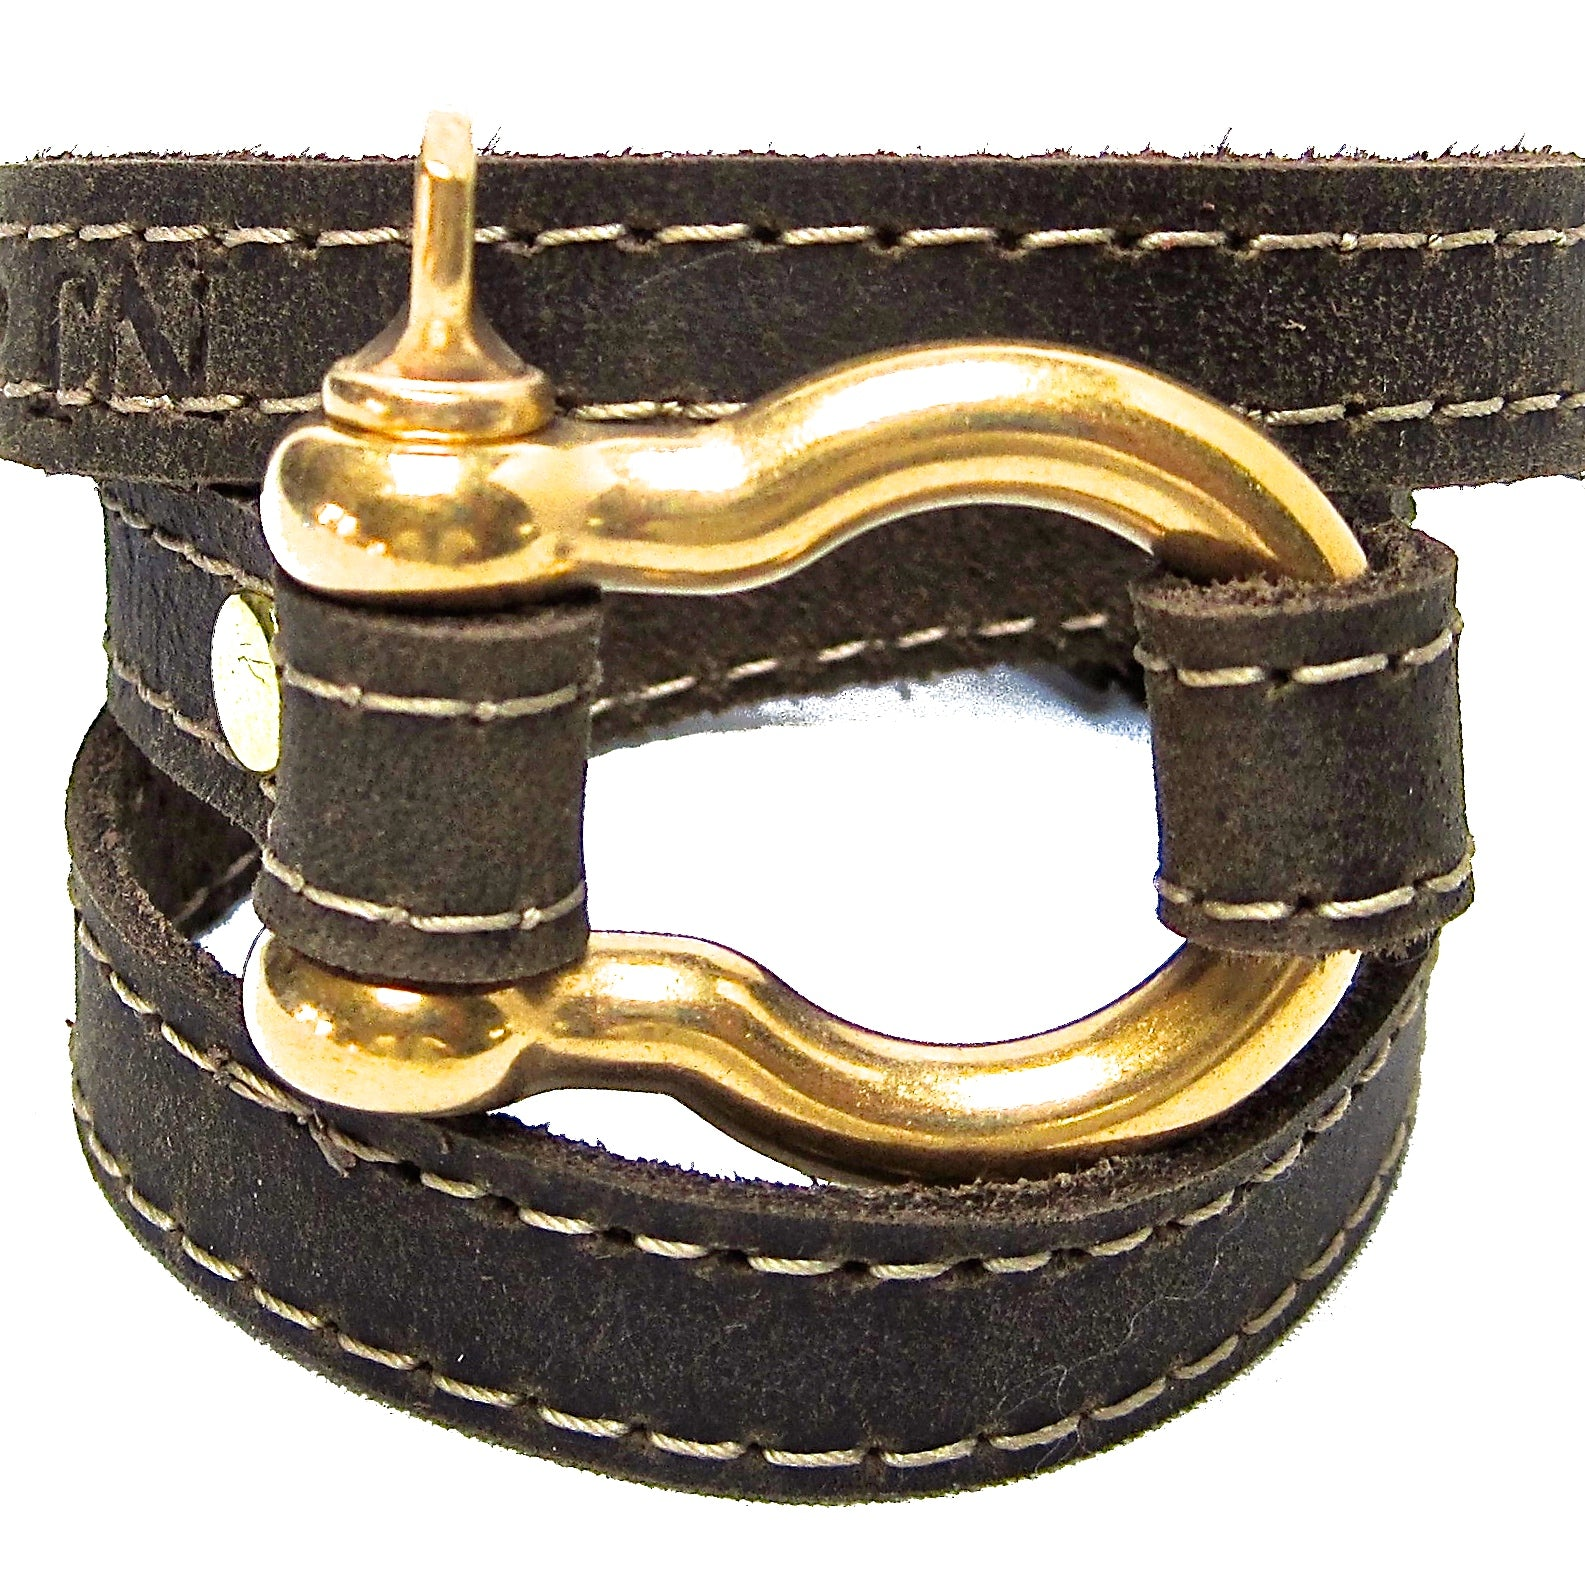 Nyet jewelry Signature Gold Shackle Wraparound Bracelet Distressed Utility Leather BY NYET JEWELRY